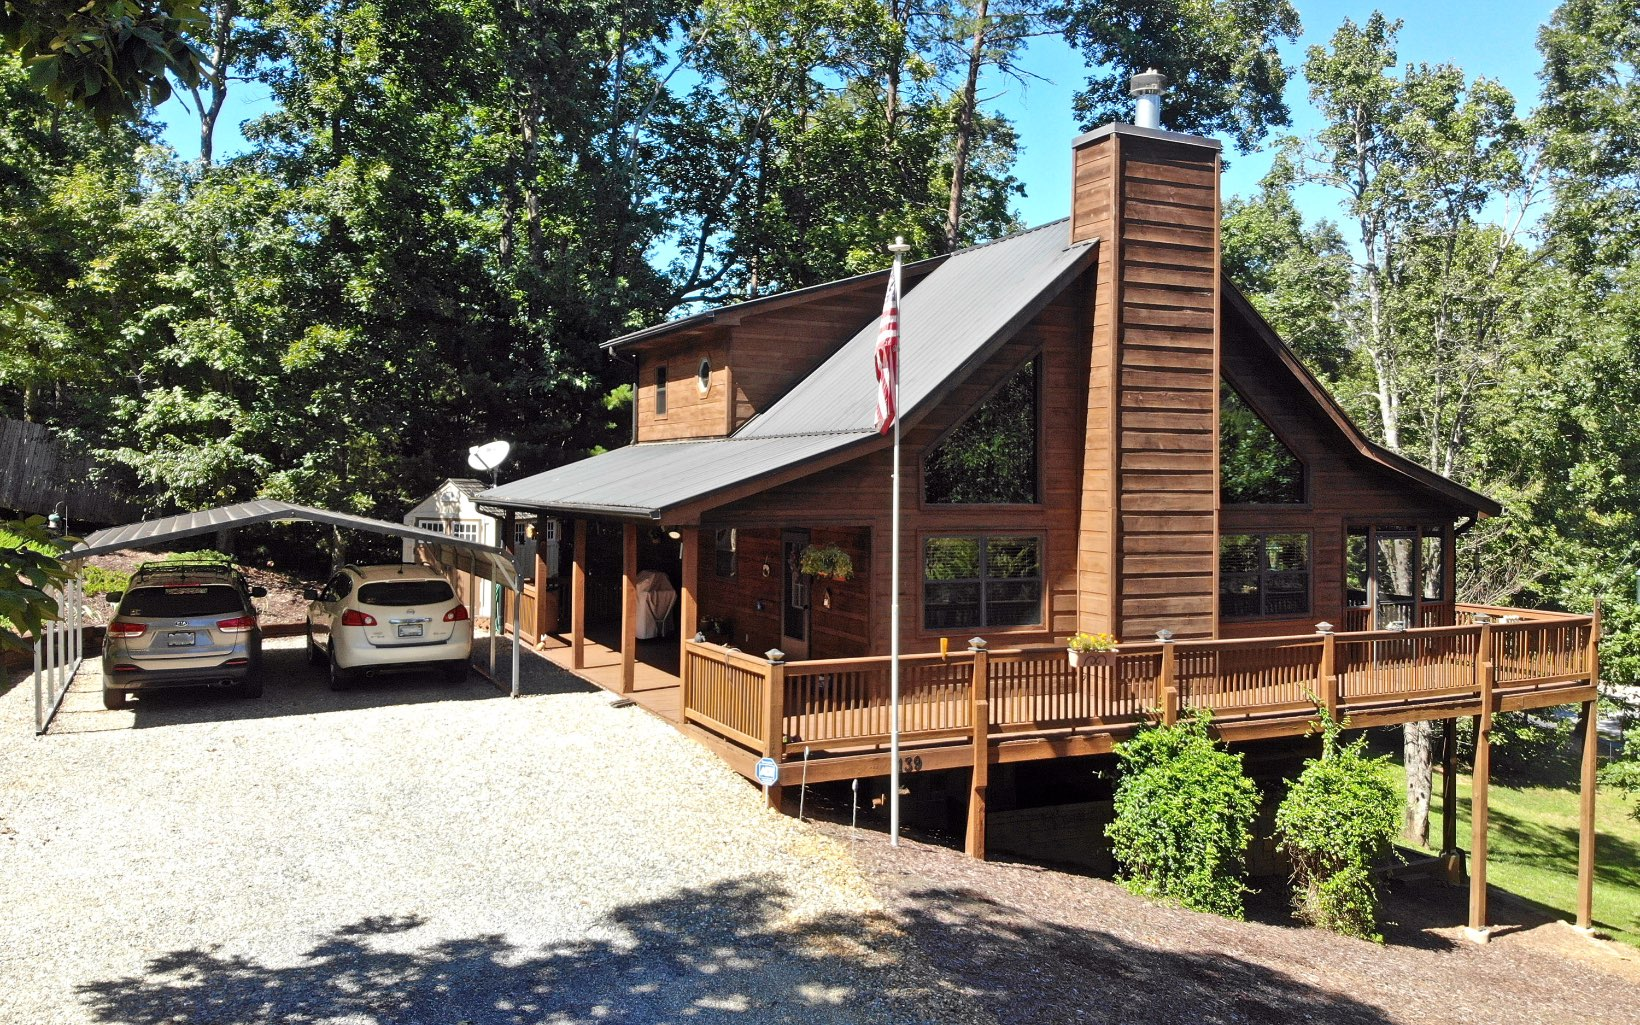 Mountain Homes and Cabins for sale in Blairsville, GA